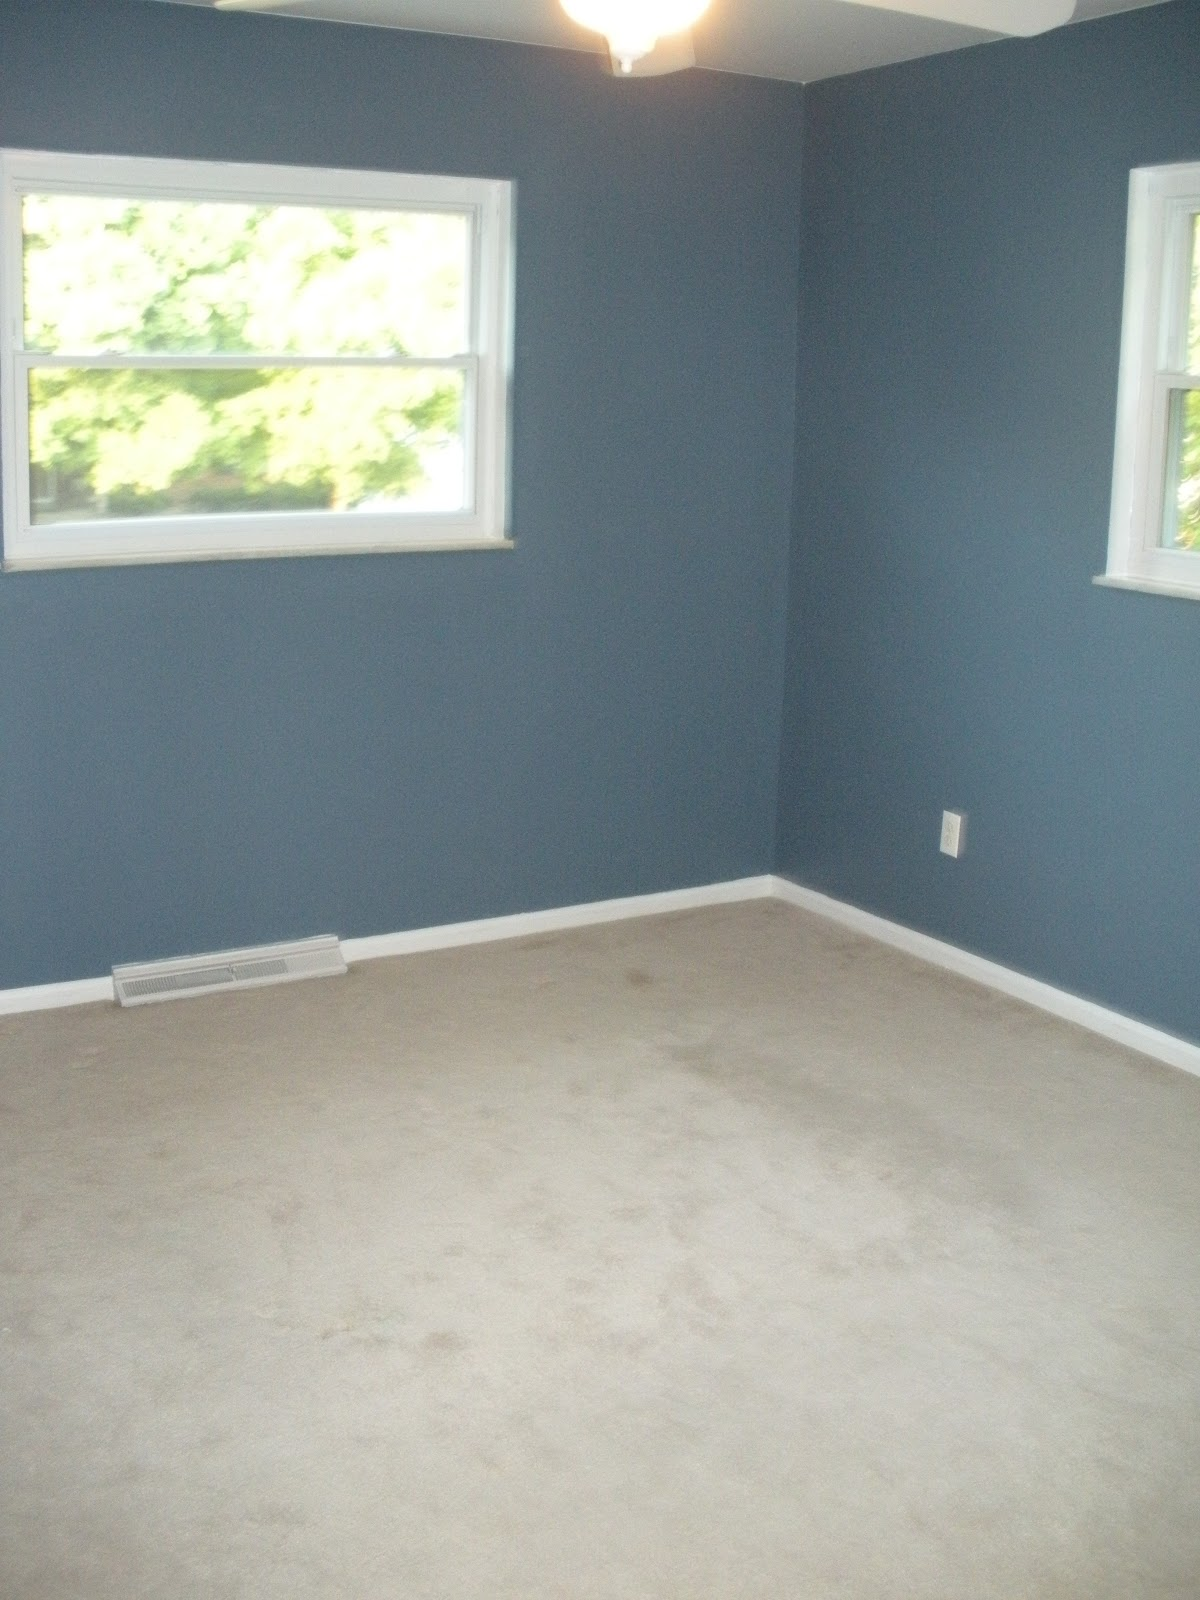 What Wall Color Goes With Navy Blue Carpet Carpet Vidalondon